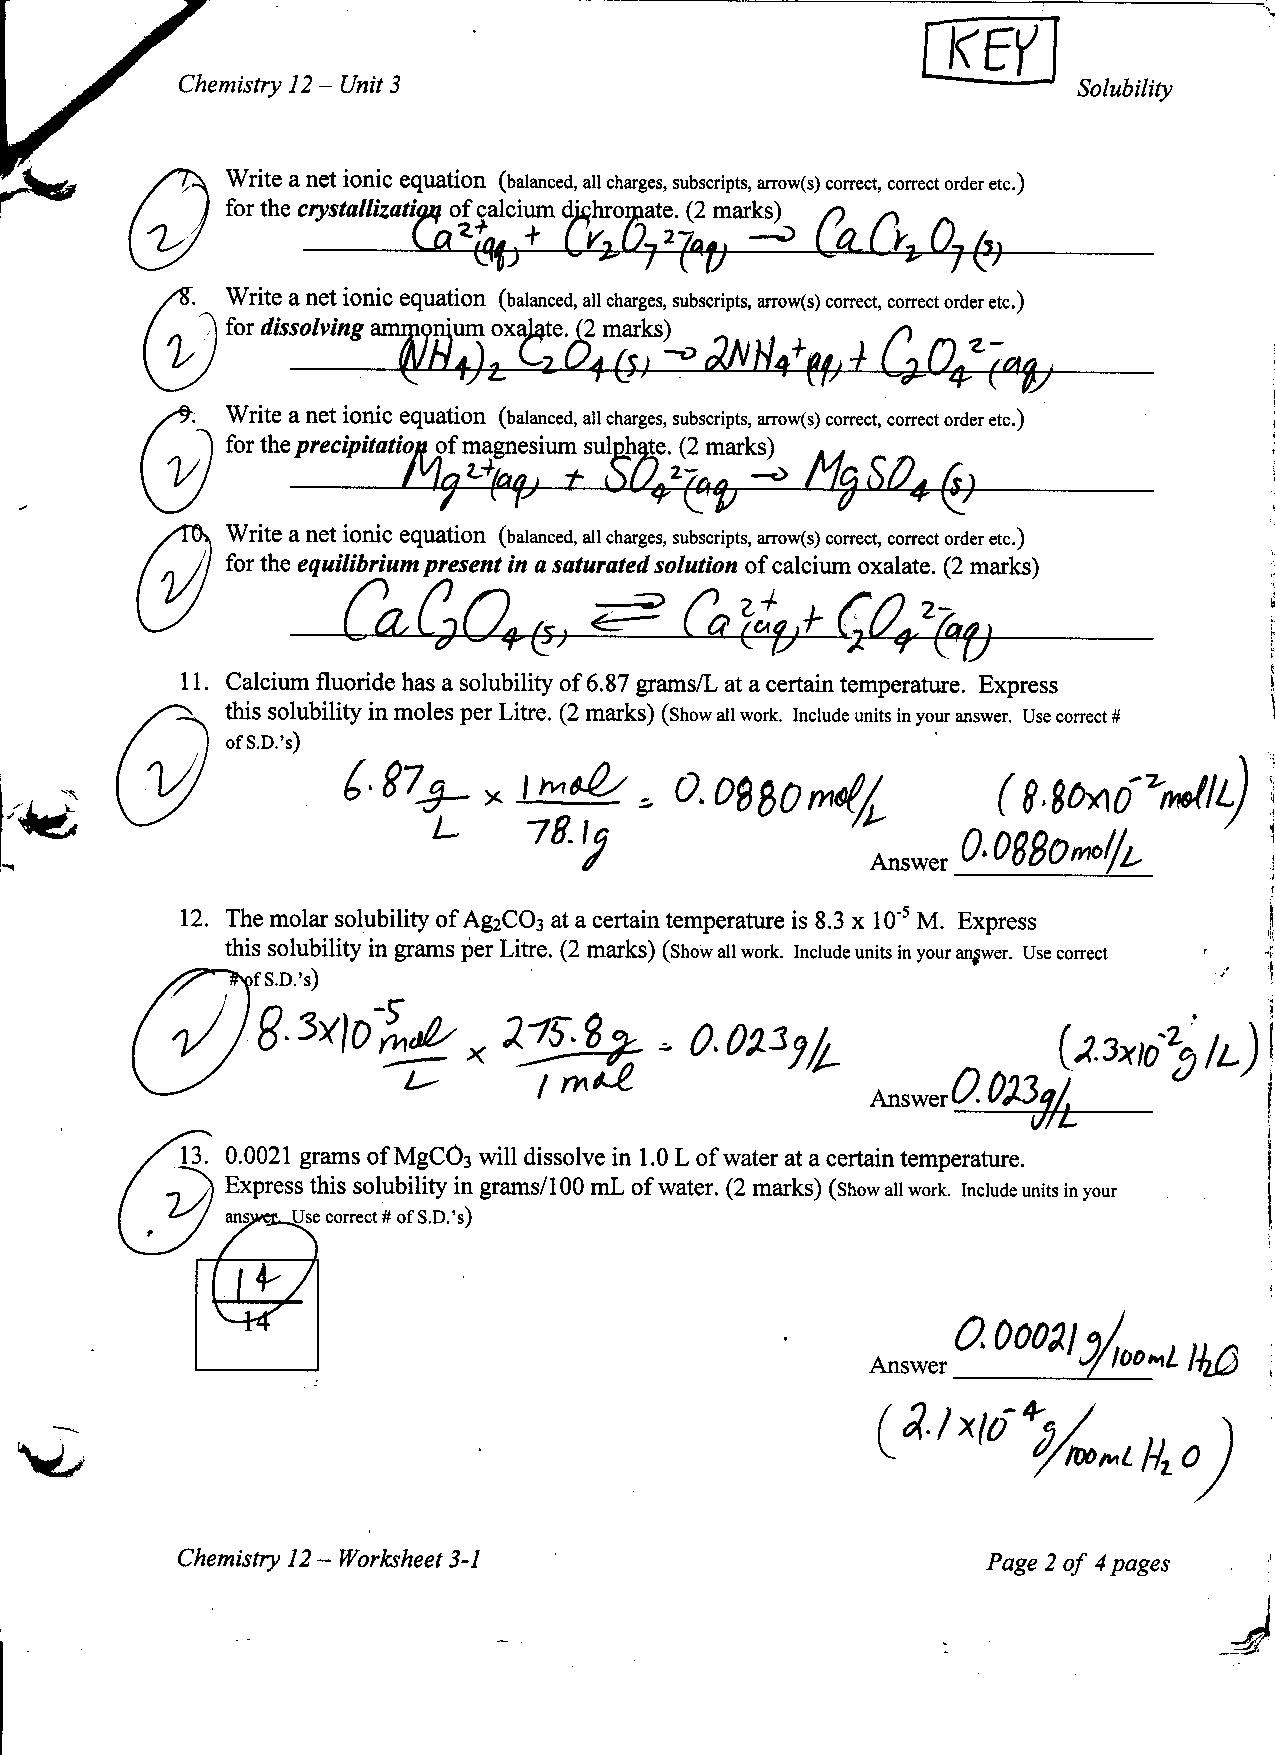 Free Worksheet Heating Curve Worksheet Answers chemistry 12 mr nguyens website practice worksheets and answer keys